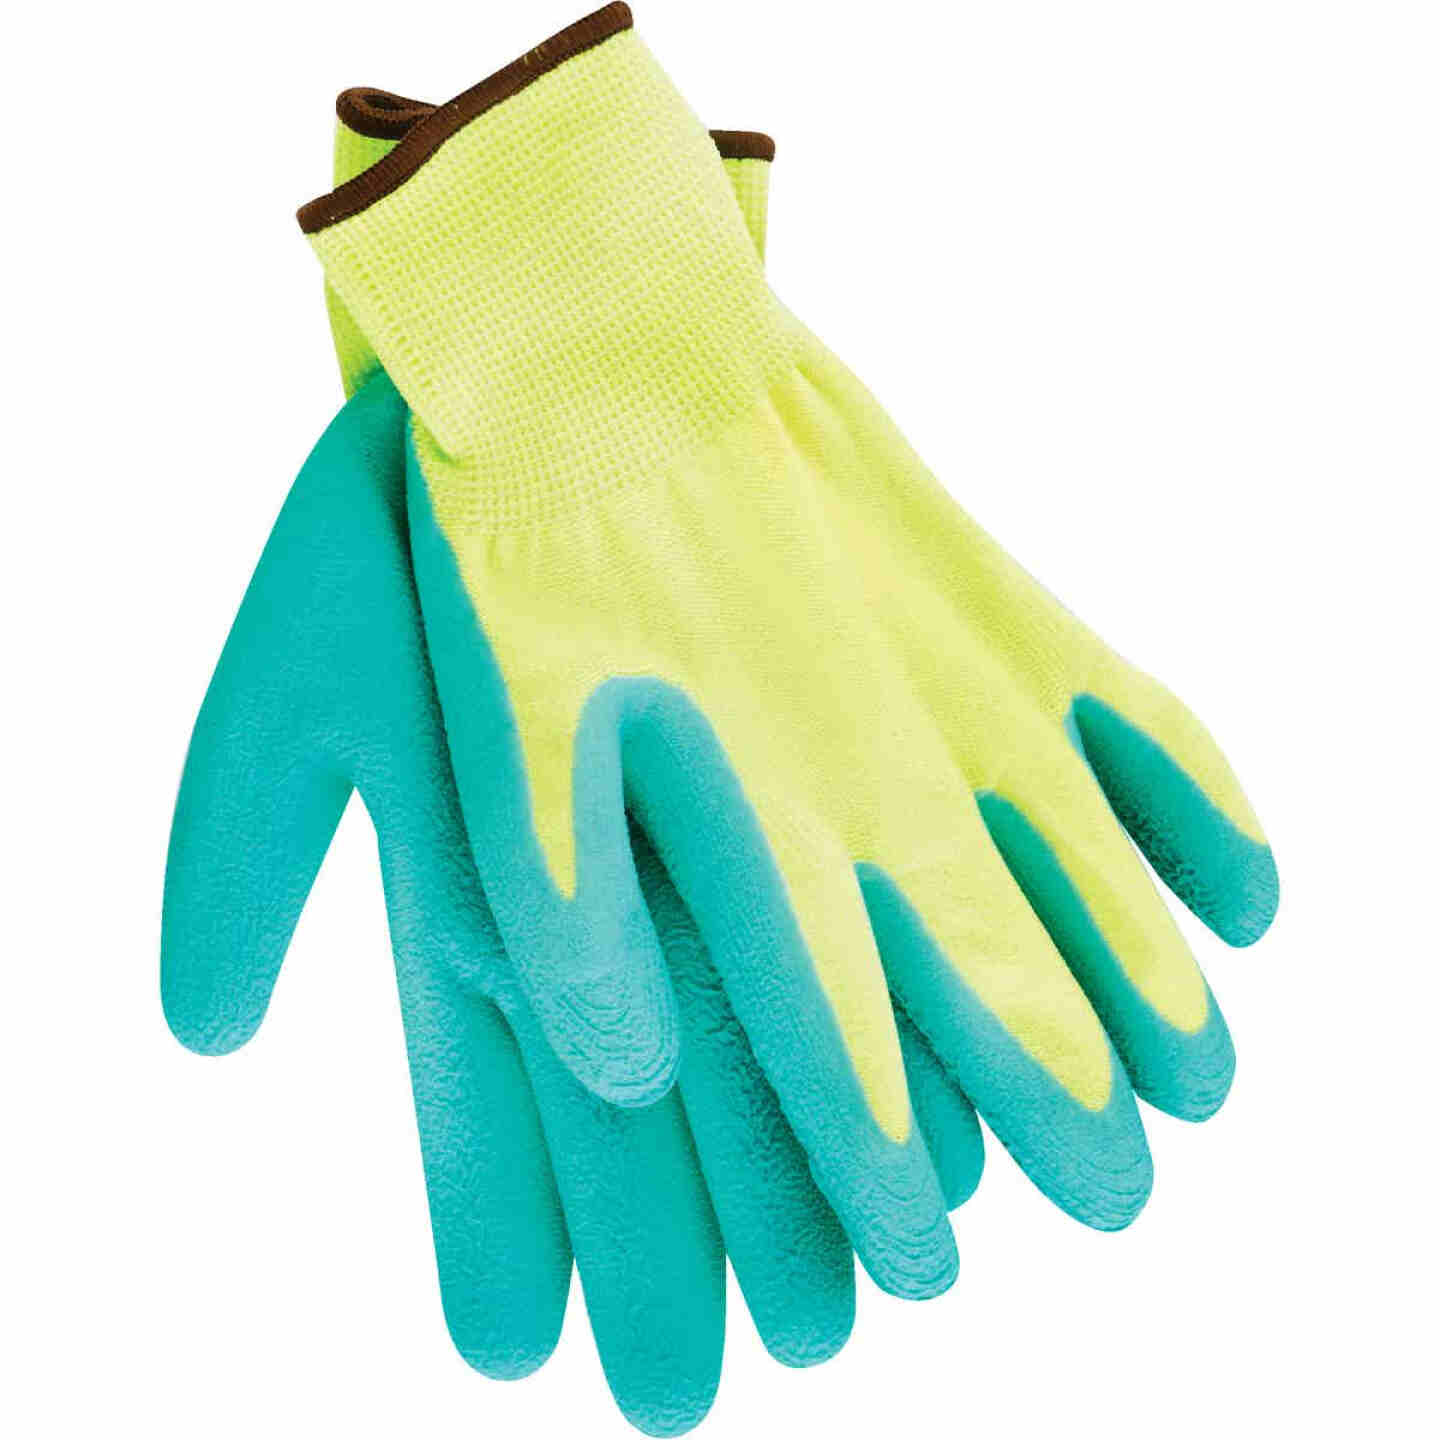 Do it Men's Large Grip Latex Coated Glove, Green Image 1